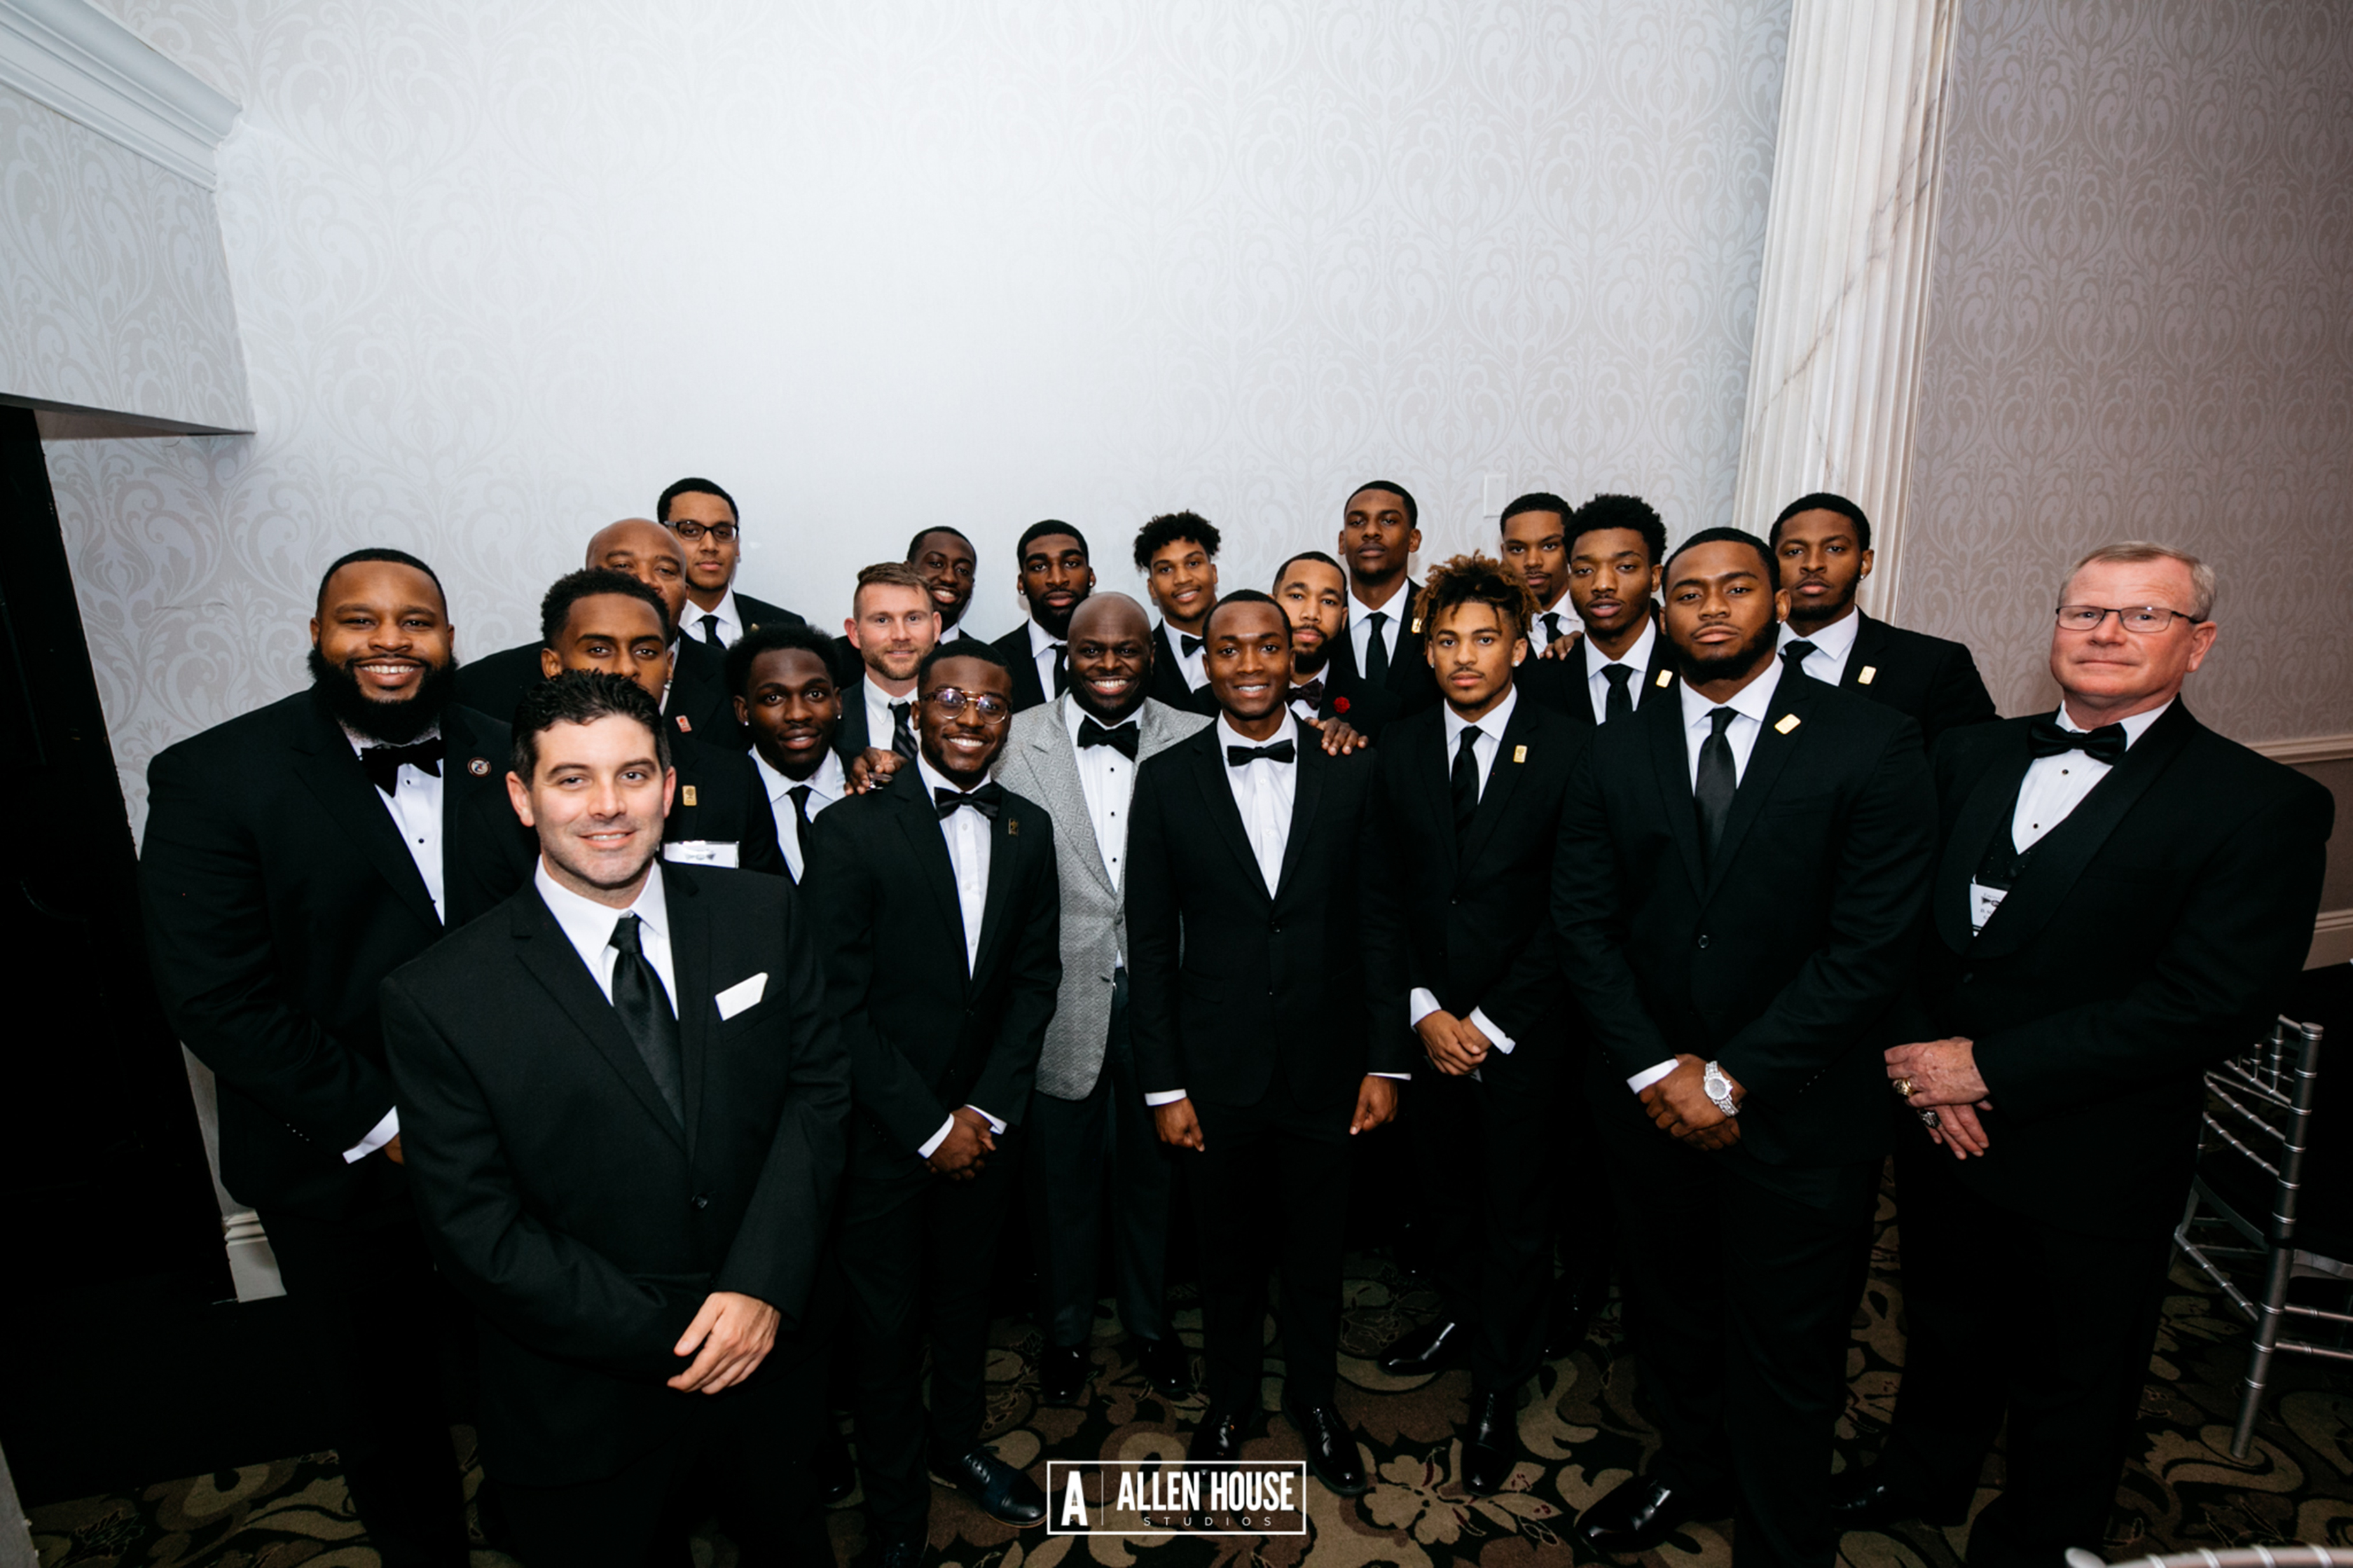 Delaware State University, as evidenced by this photo, was well represented at the 23rd annual Ebony Black Tie Affair event on Nov. 25 at the Waterfall Banquet and Conference Center in Claymont, Del.